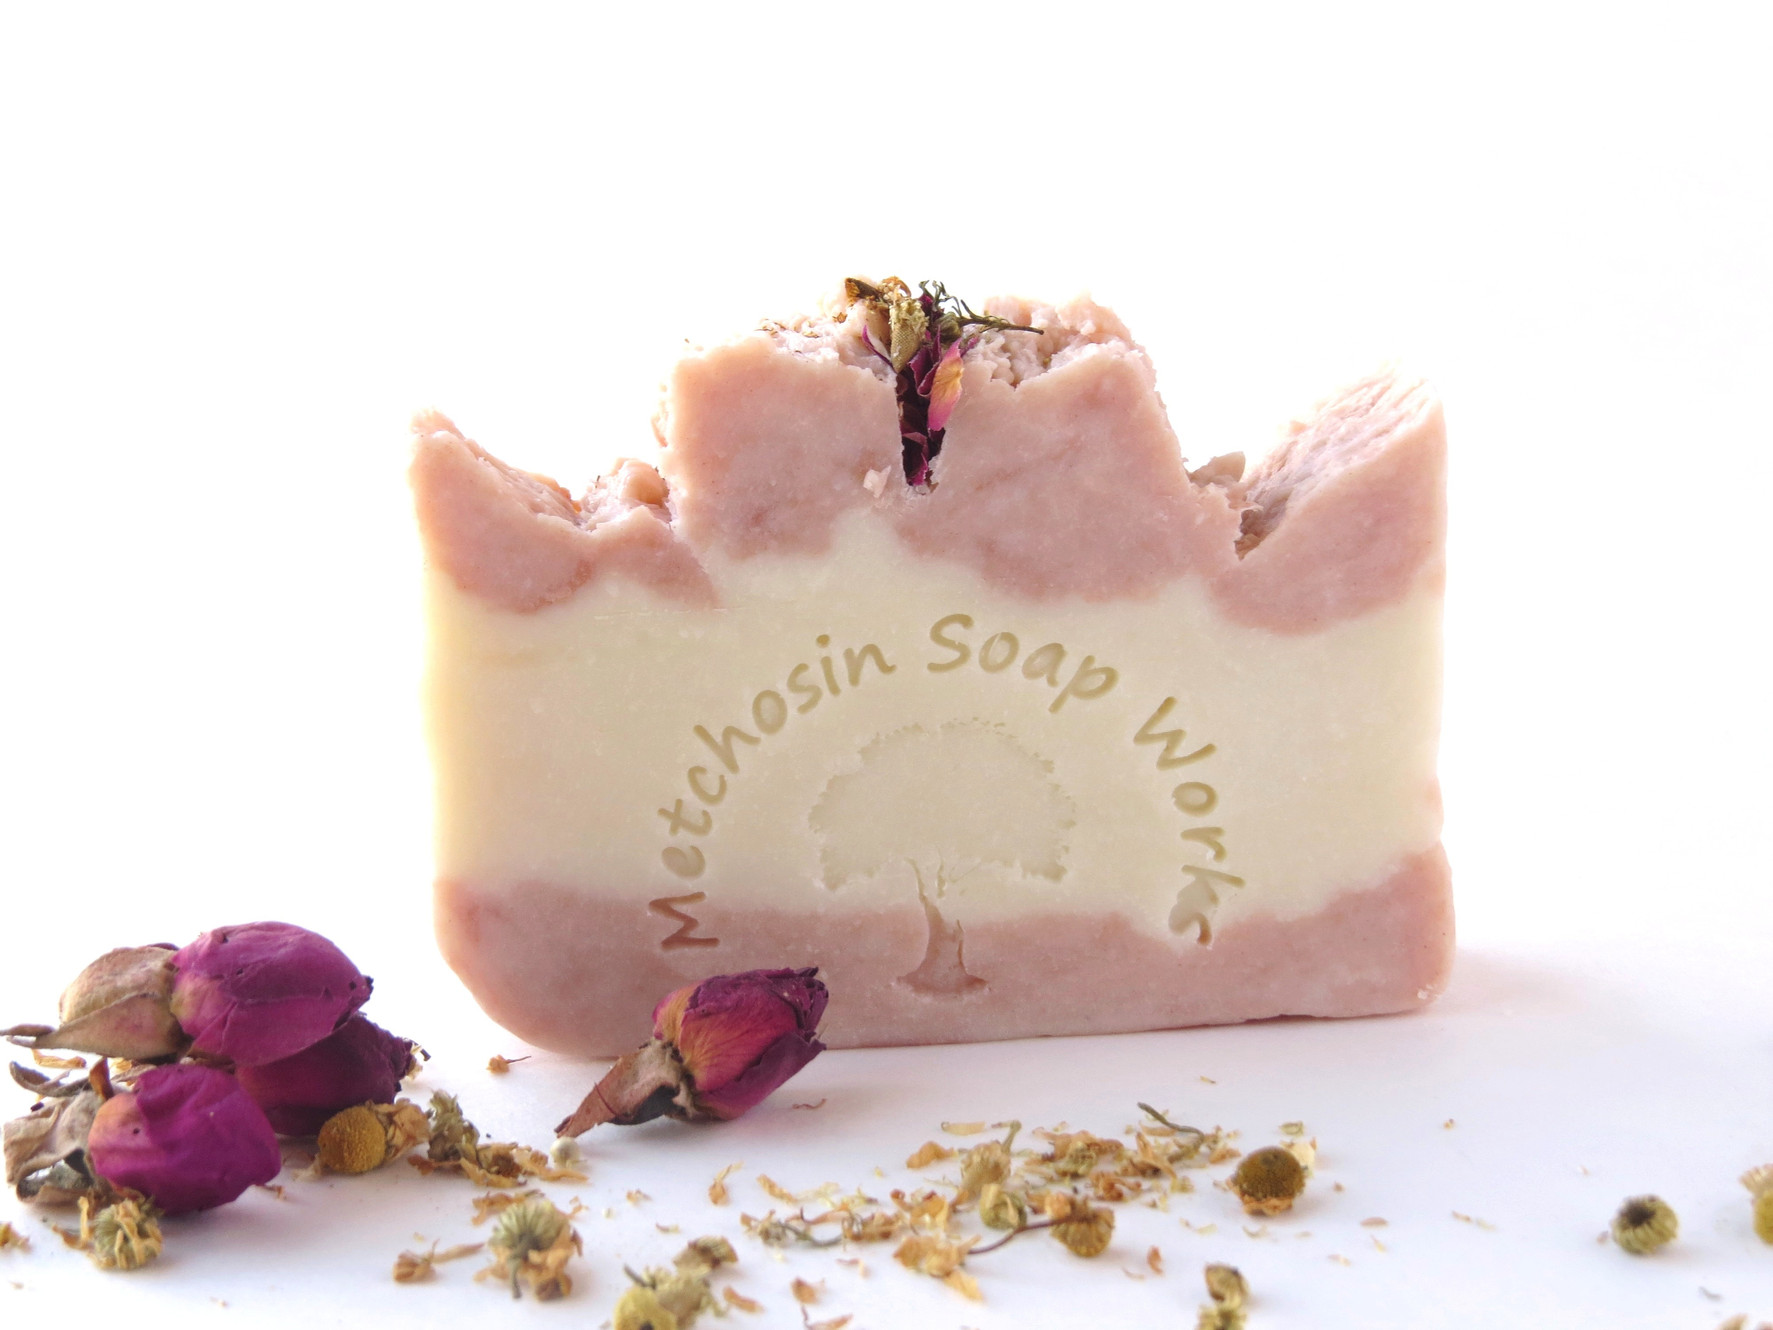 CLASSES | Metchosin Soap Works